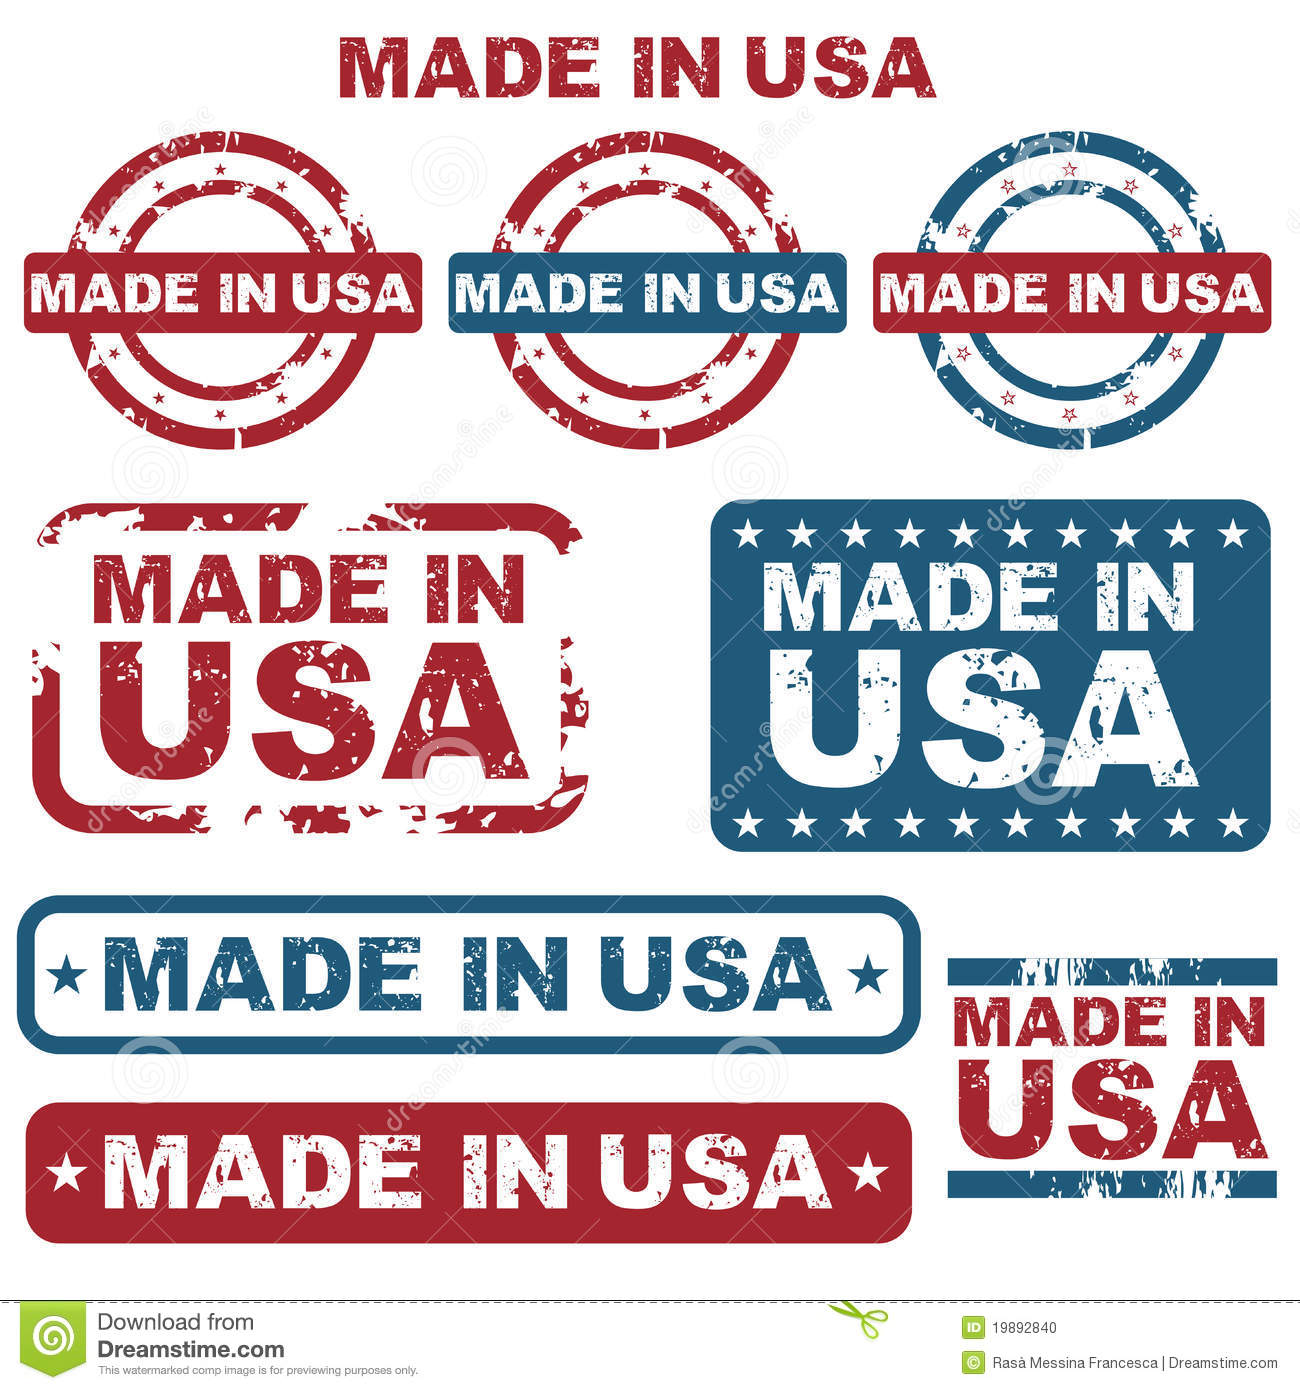 made in usa stamps stock photo image 19892840. Black Bedroom Furniture Sets. Home Design Ideas